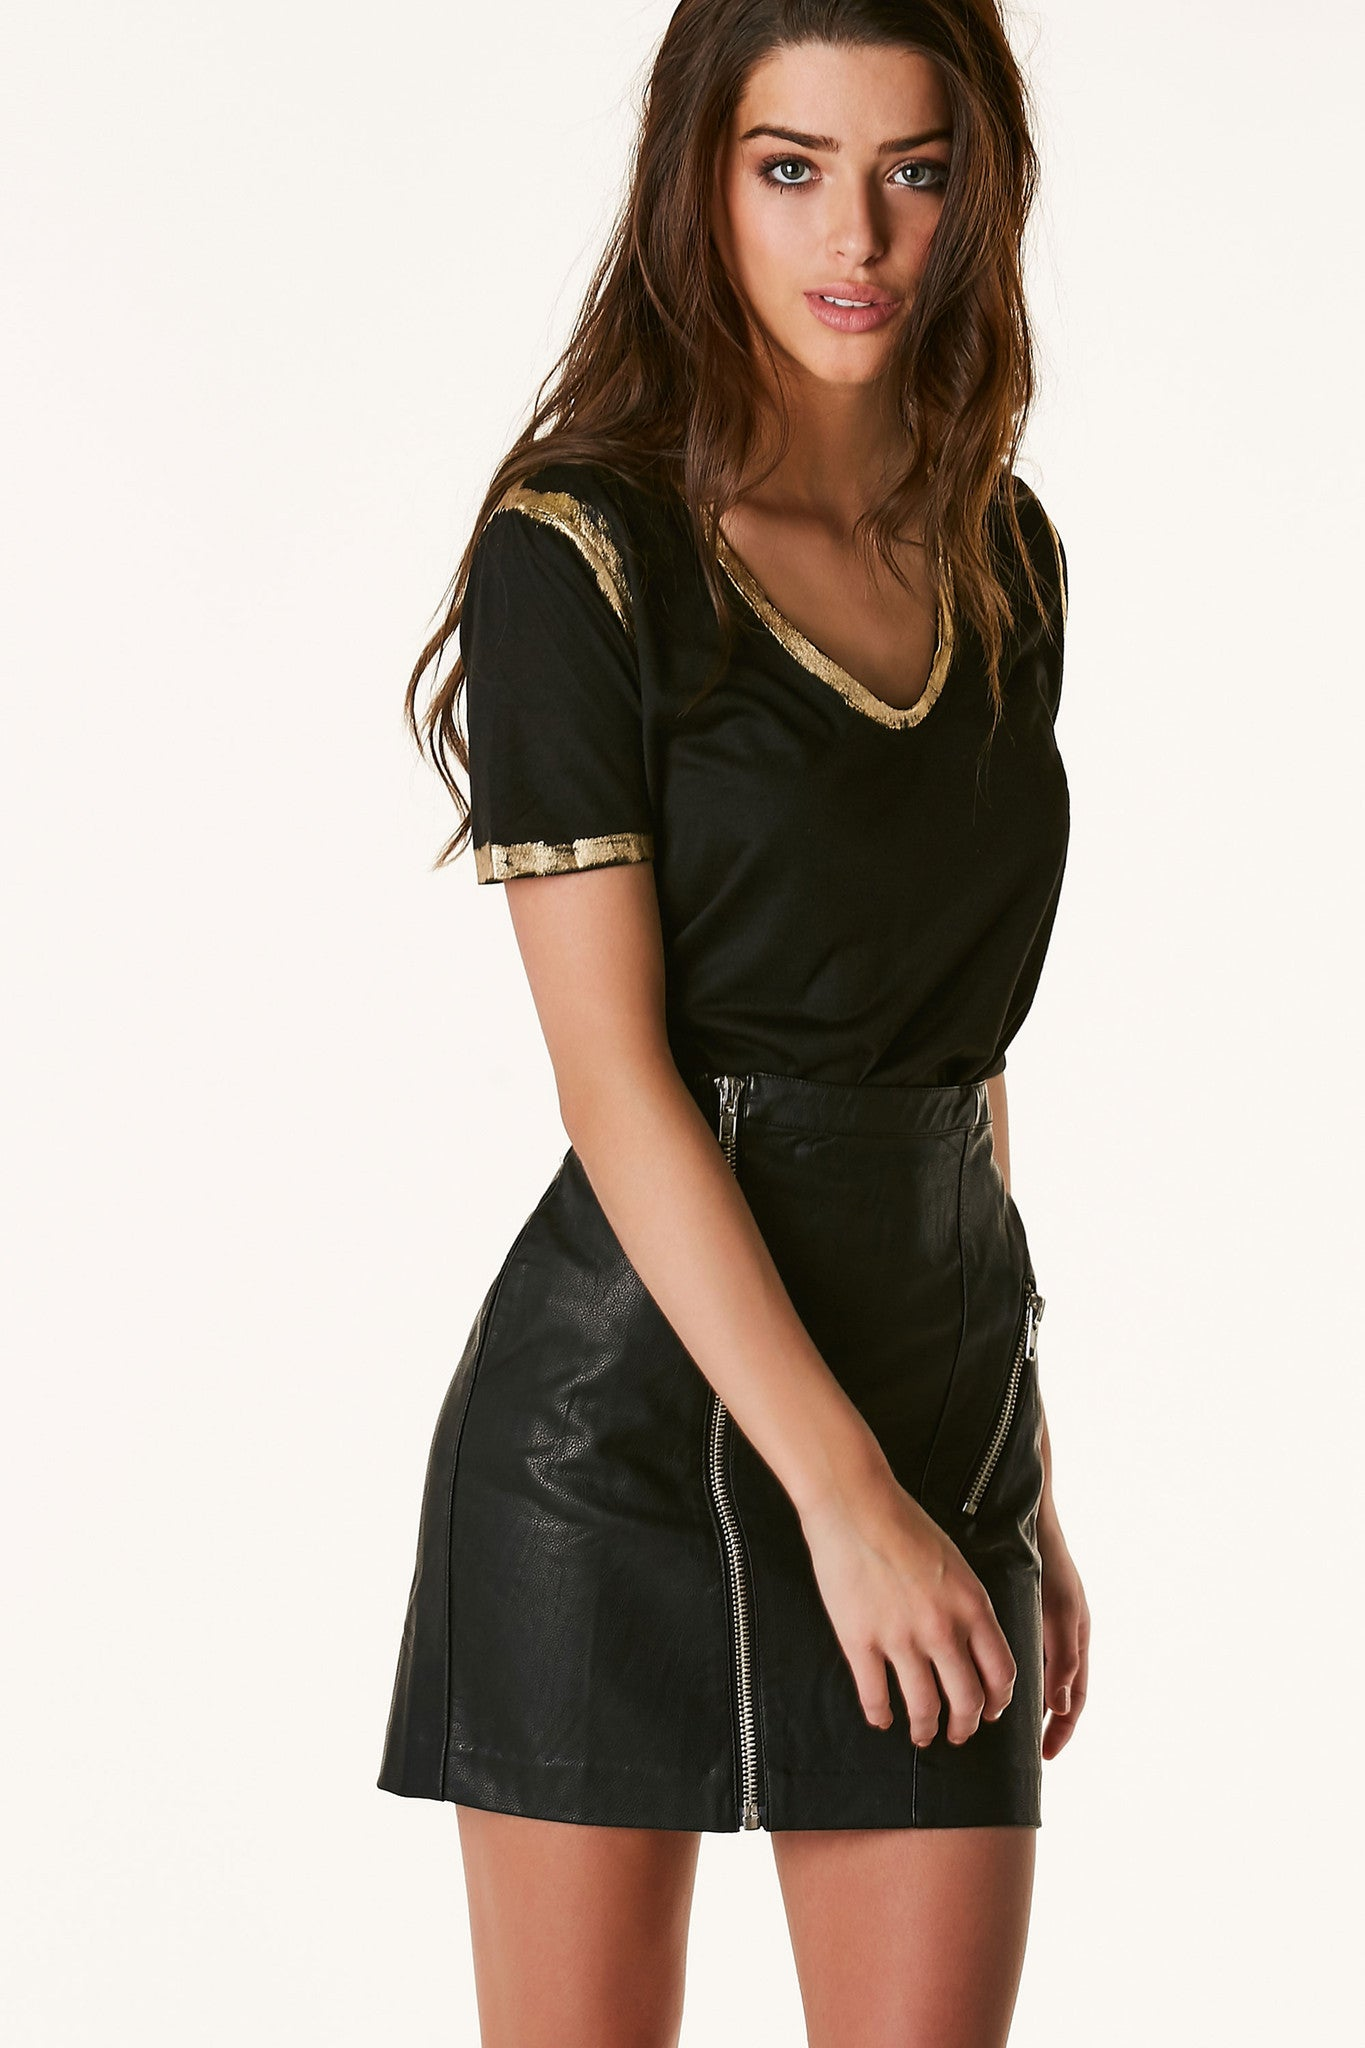 Basic round neck short sleeve top with gold metallic trim all around. Soft material with relaxed fit.